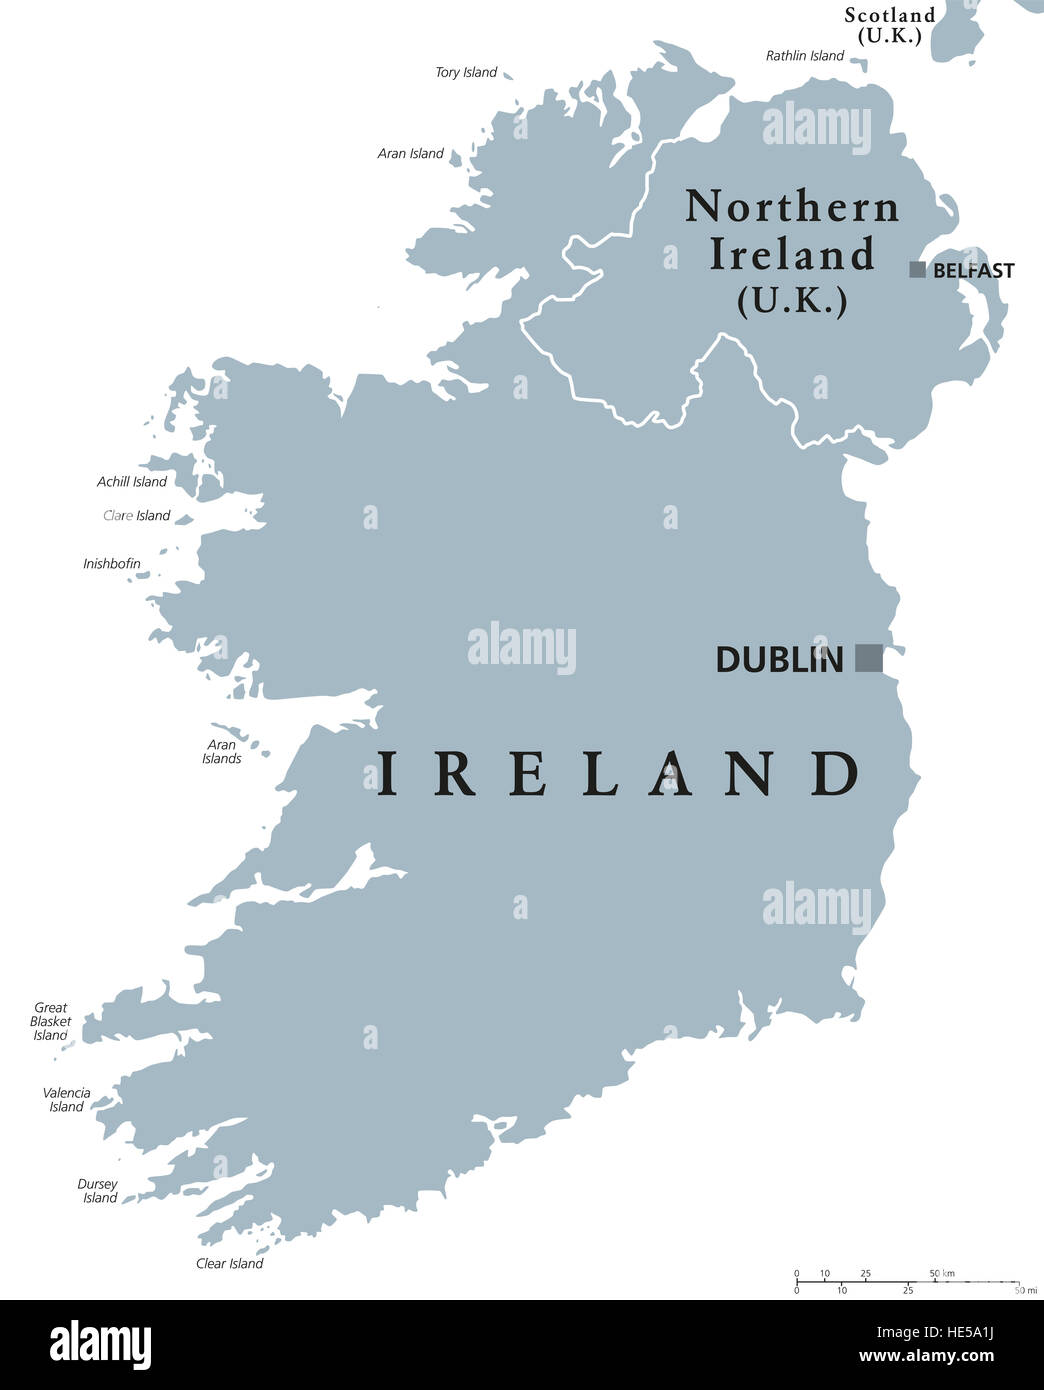 Republic of ireland and northern ireland political map with republic of ireland and northern ireland political map with capitals dublin and belfast island in europe gumiabroncs Images